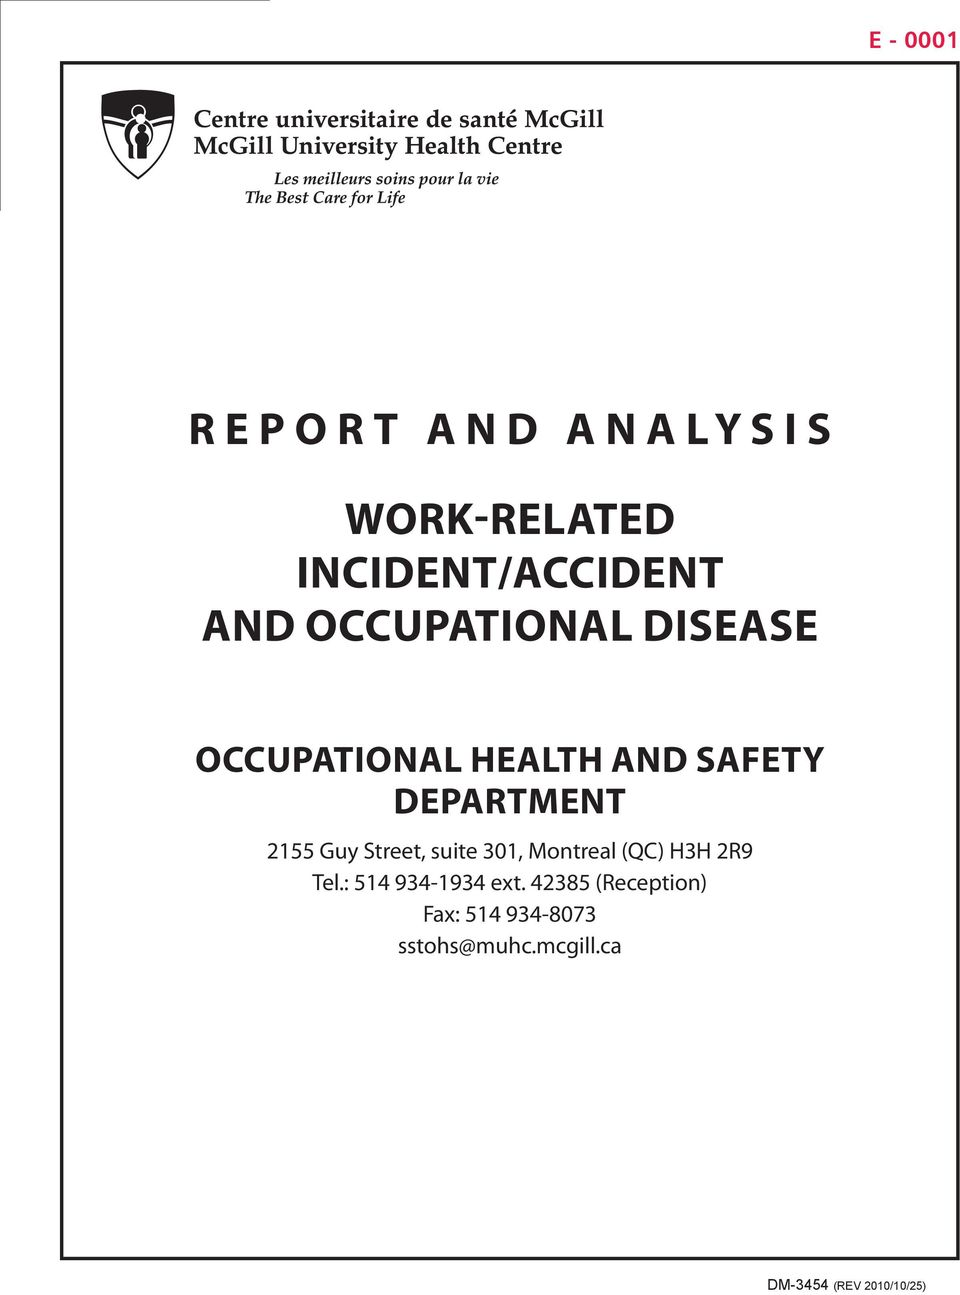 REPORT AND ANALYSIS WORK-RELATED INCIDENT/ACCIDENT AND OCCUPATIONAL